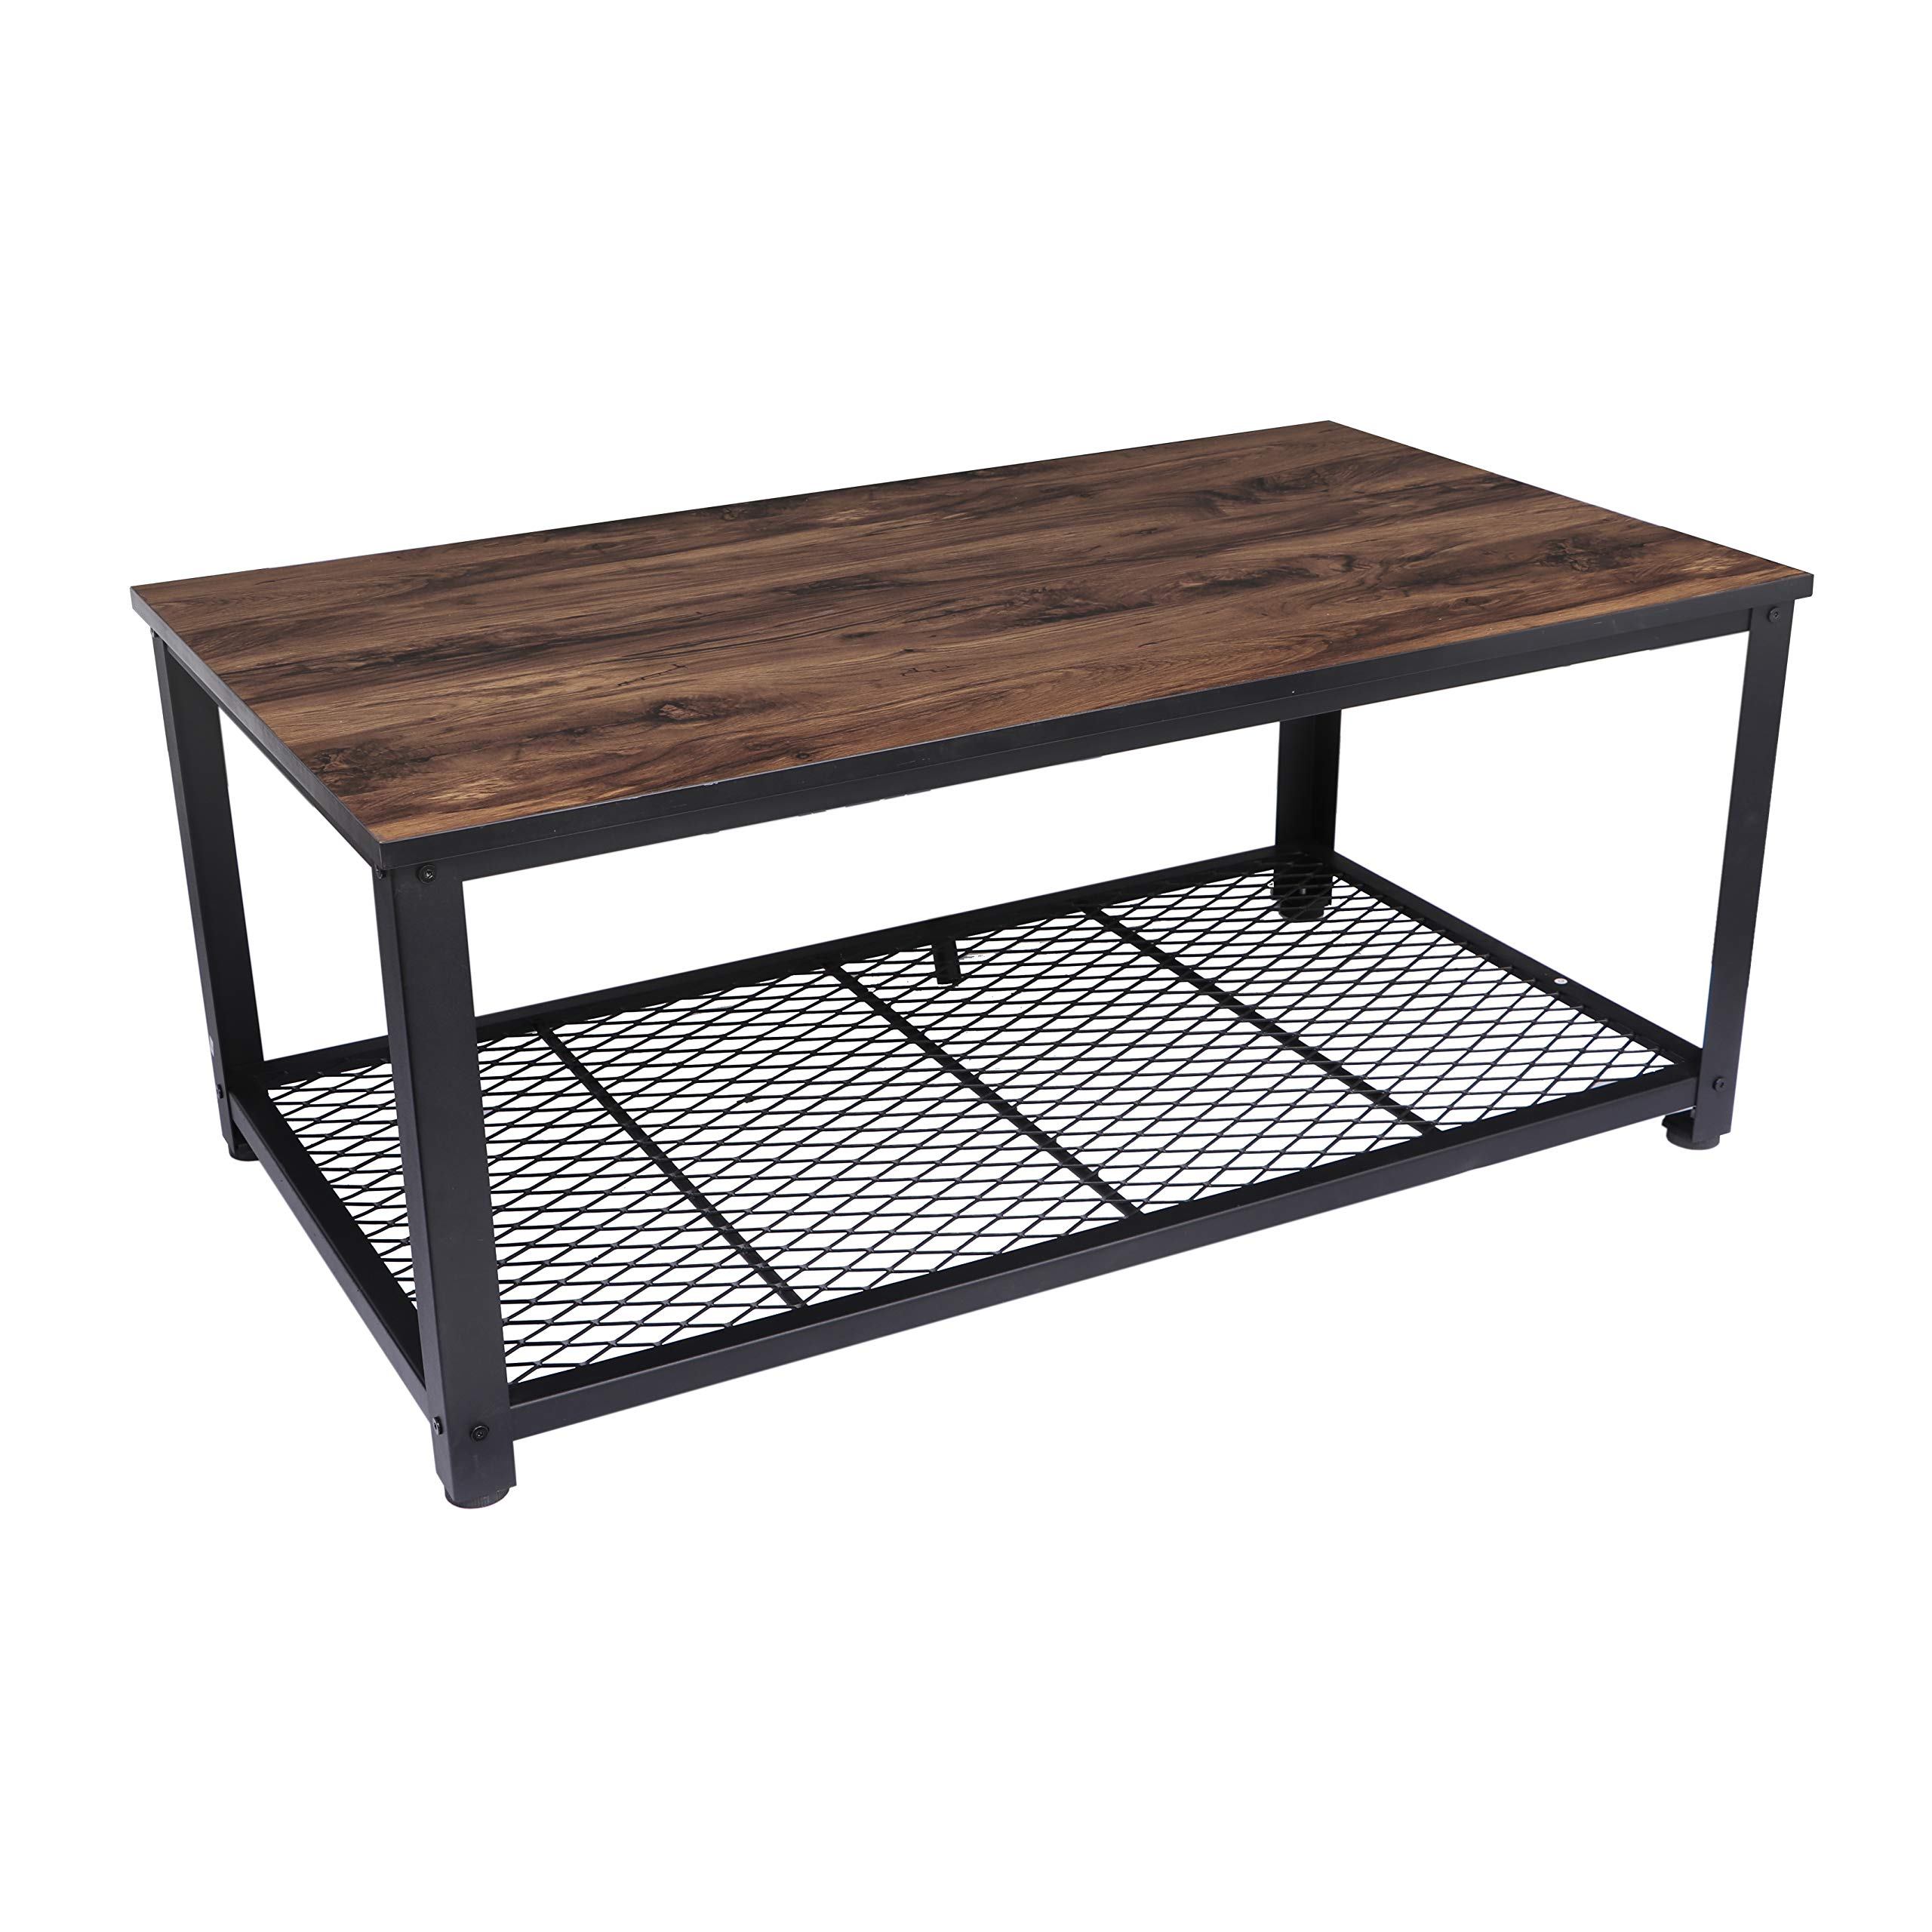 Homemaxs Coffee Table with Large Storage Space, Modern Industrial Style Coffee Table for Living Room, Office, Rustic Home Decor -Easy Assembly, 41.34x 23.62 x 18.5in by Homemaxs